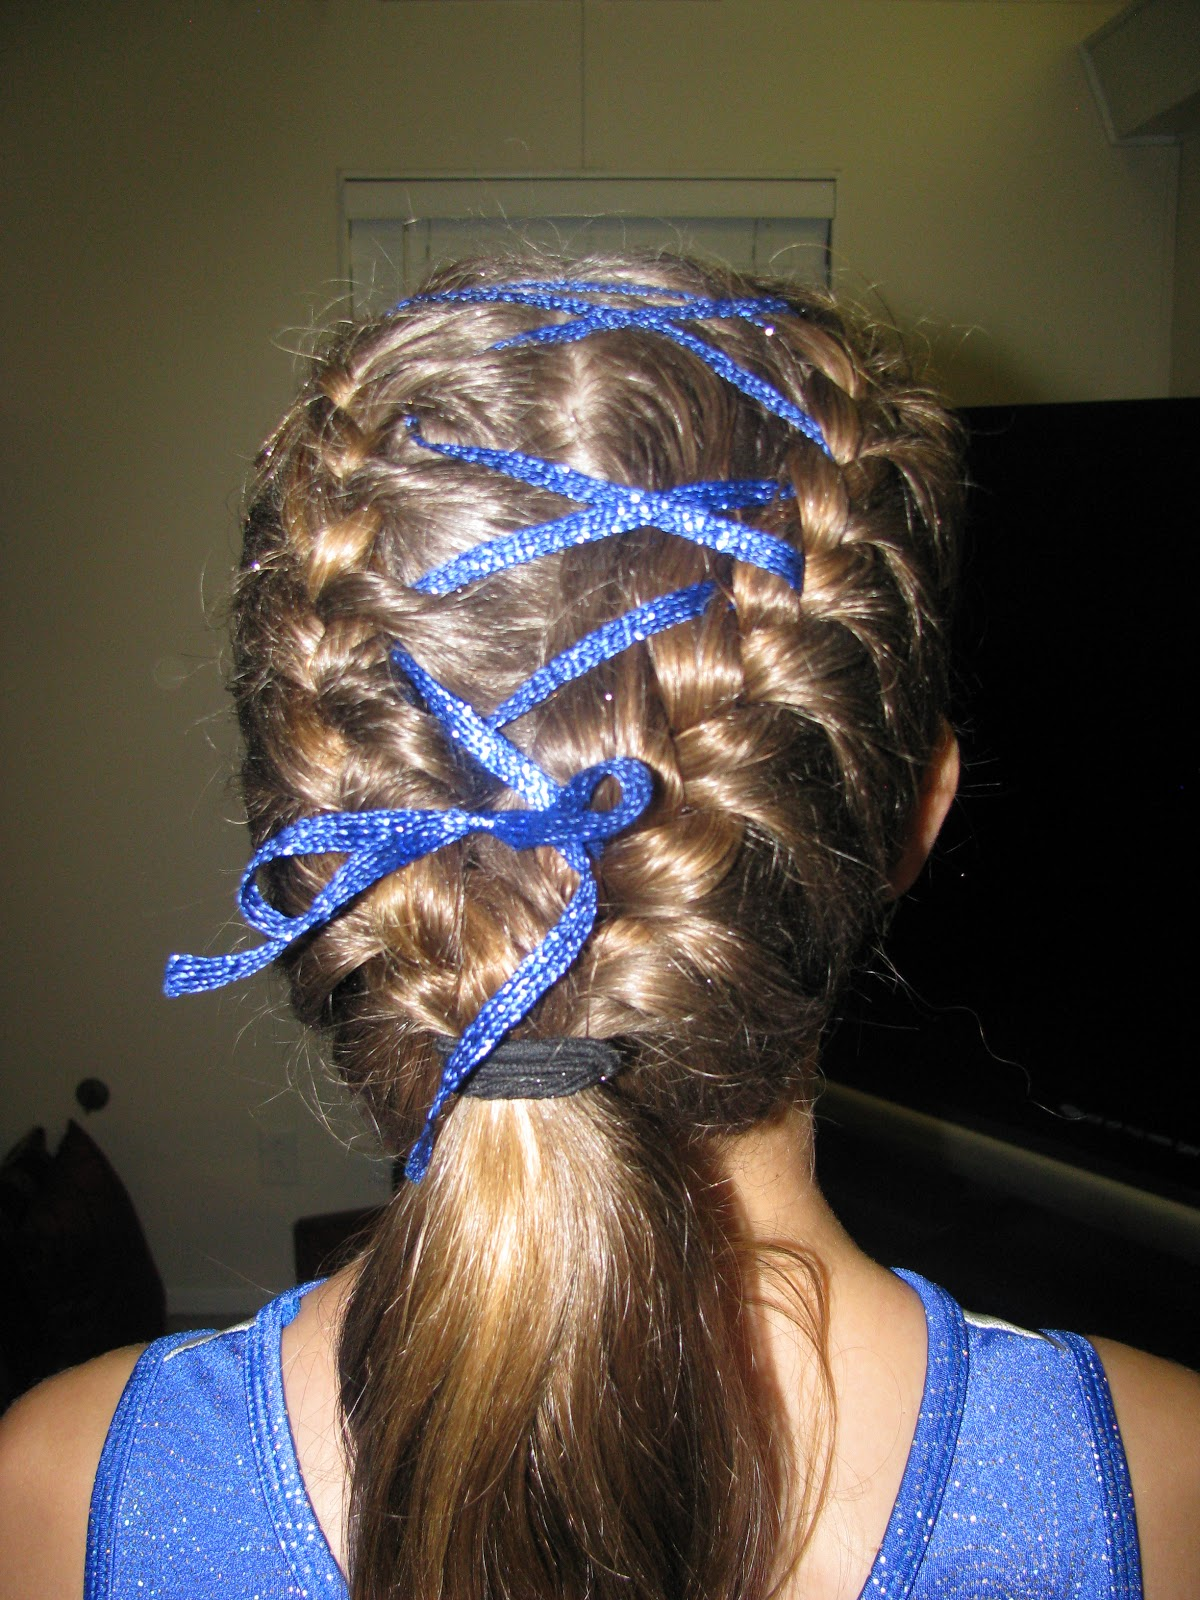 and gymnastics meet hairstyles